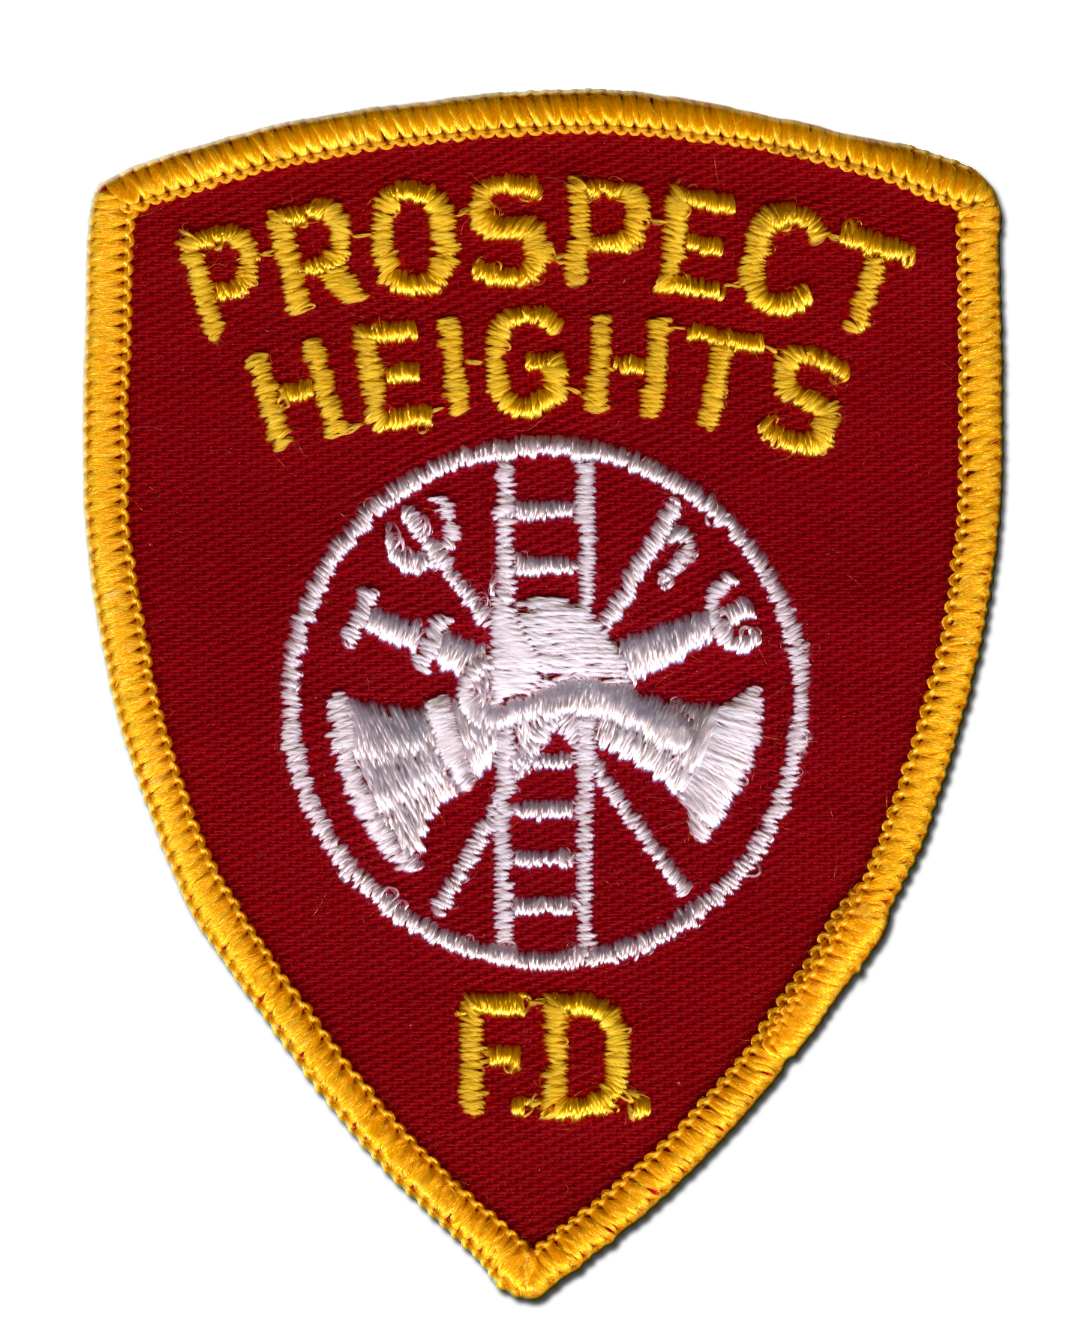 Prospect Heights Fire District patch